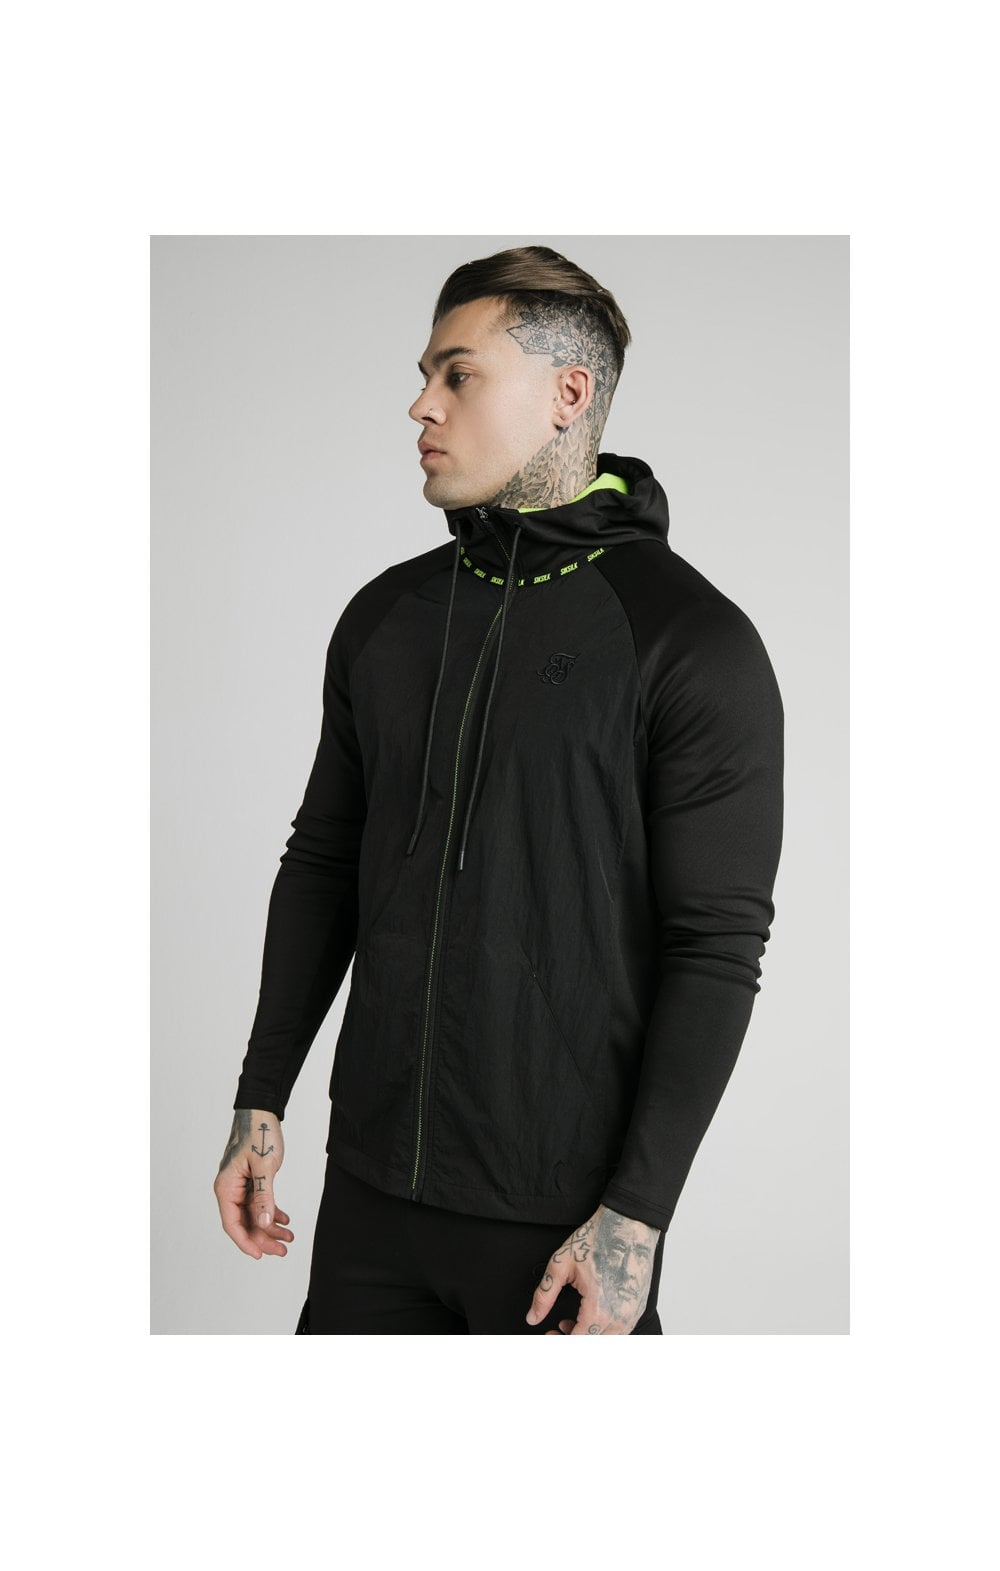 SikSilk Adapt Crushed Nylon Zip Through – Black